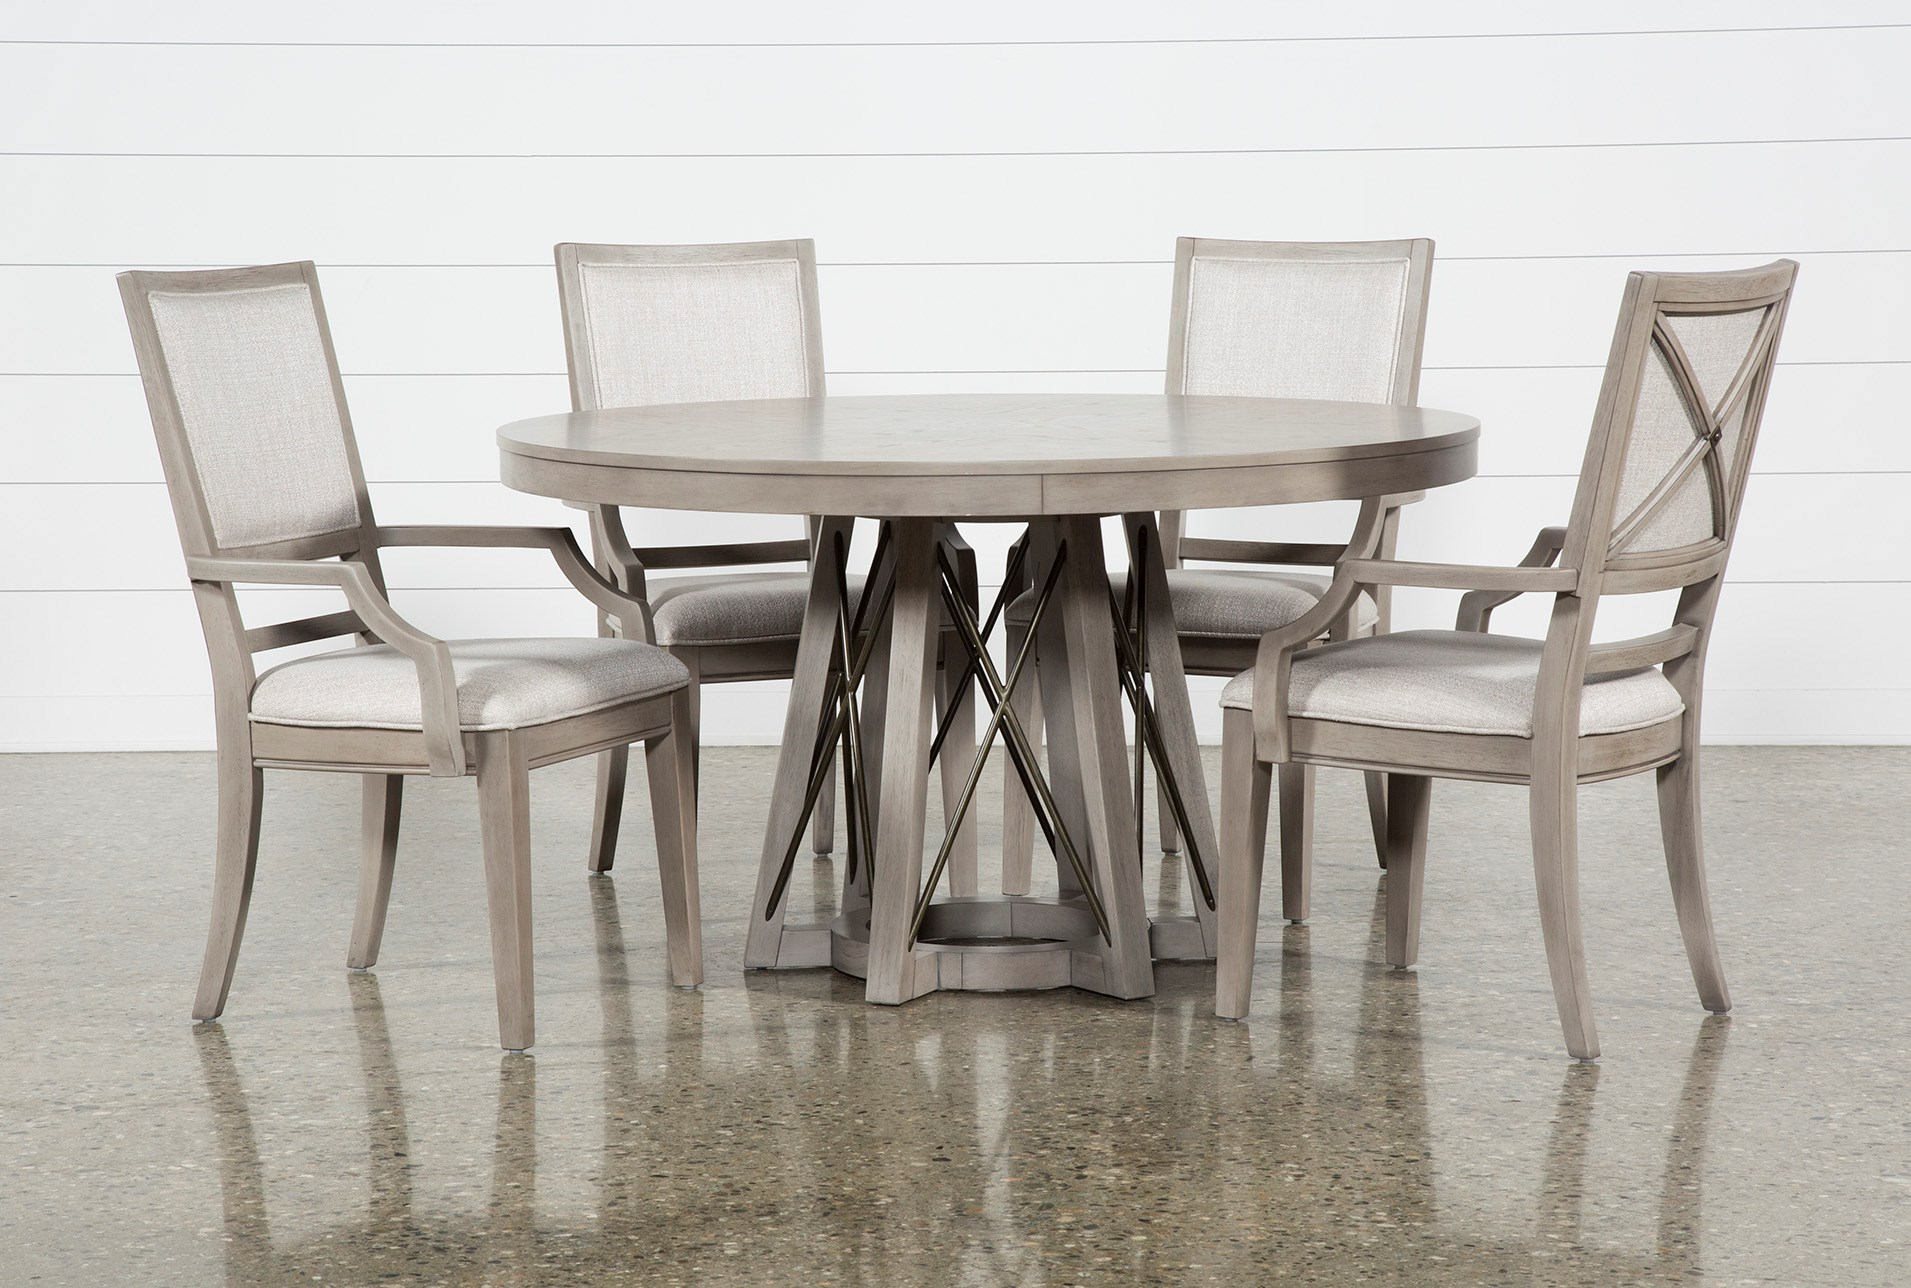 Camilla 5 Piece Round Dining Table With Arm Chairs Qty 1 Has Been Successfully Added To Your Cart